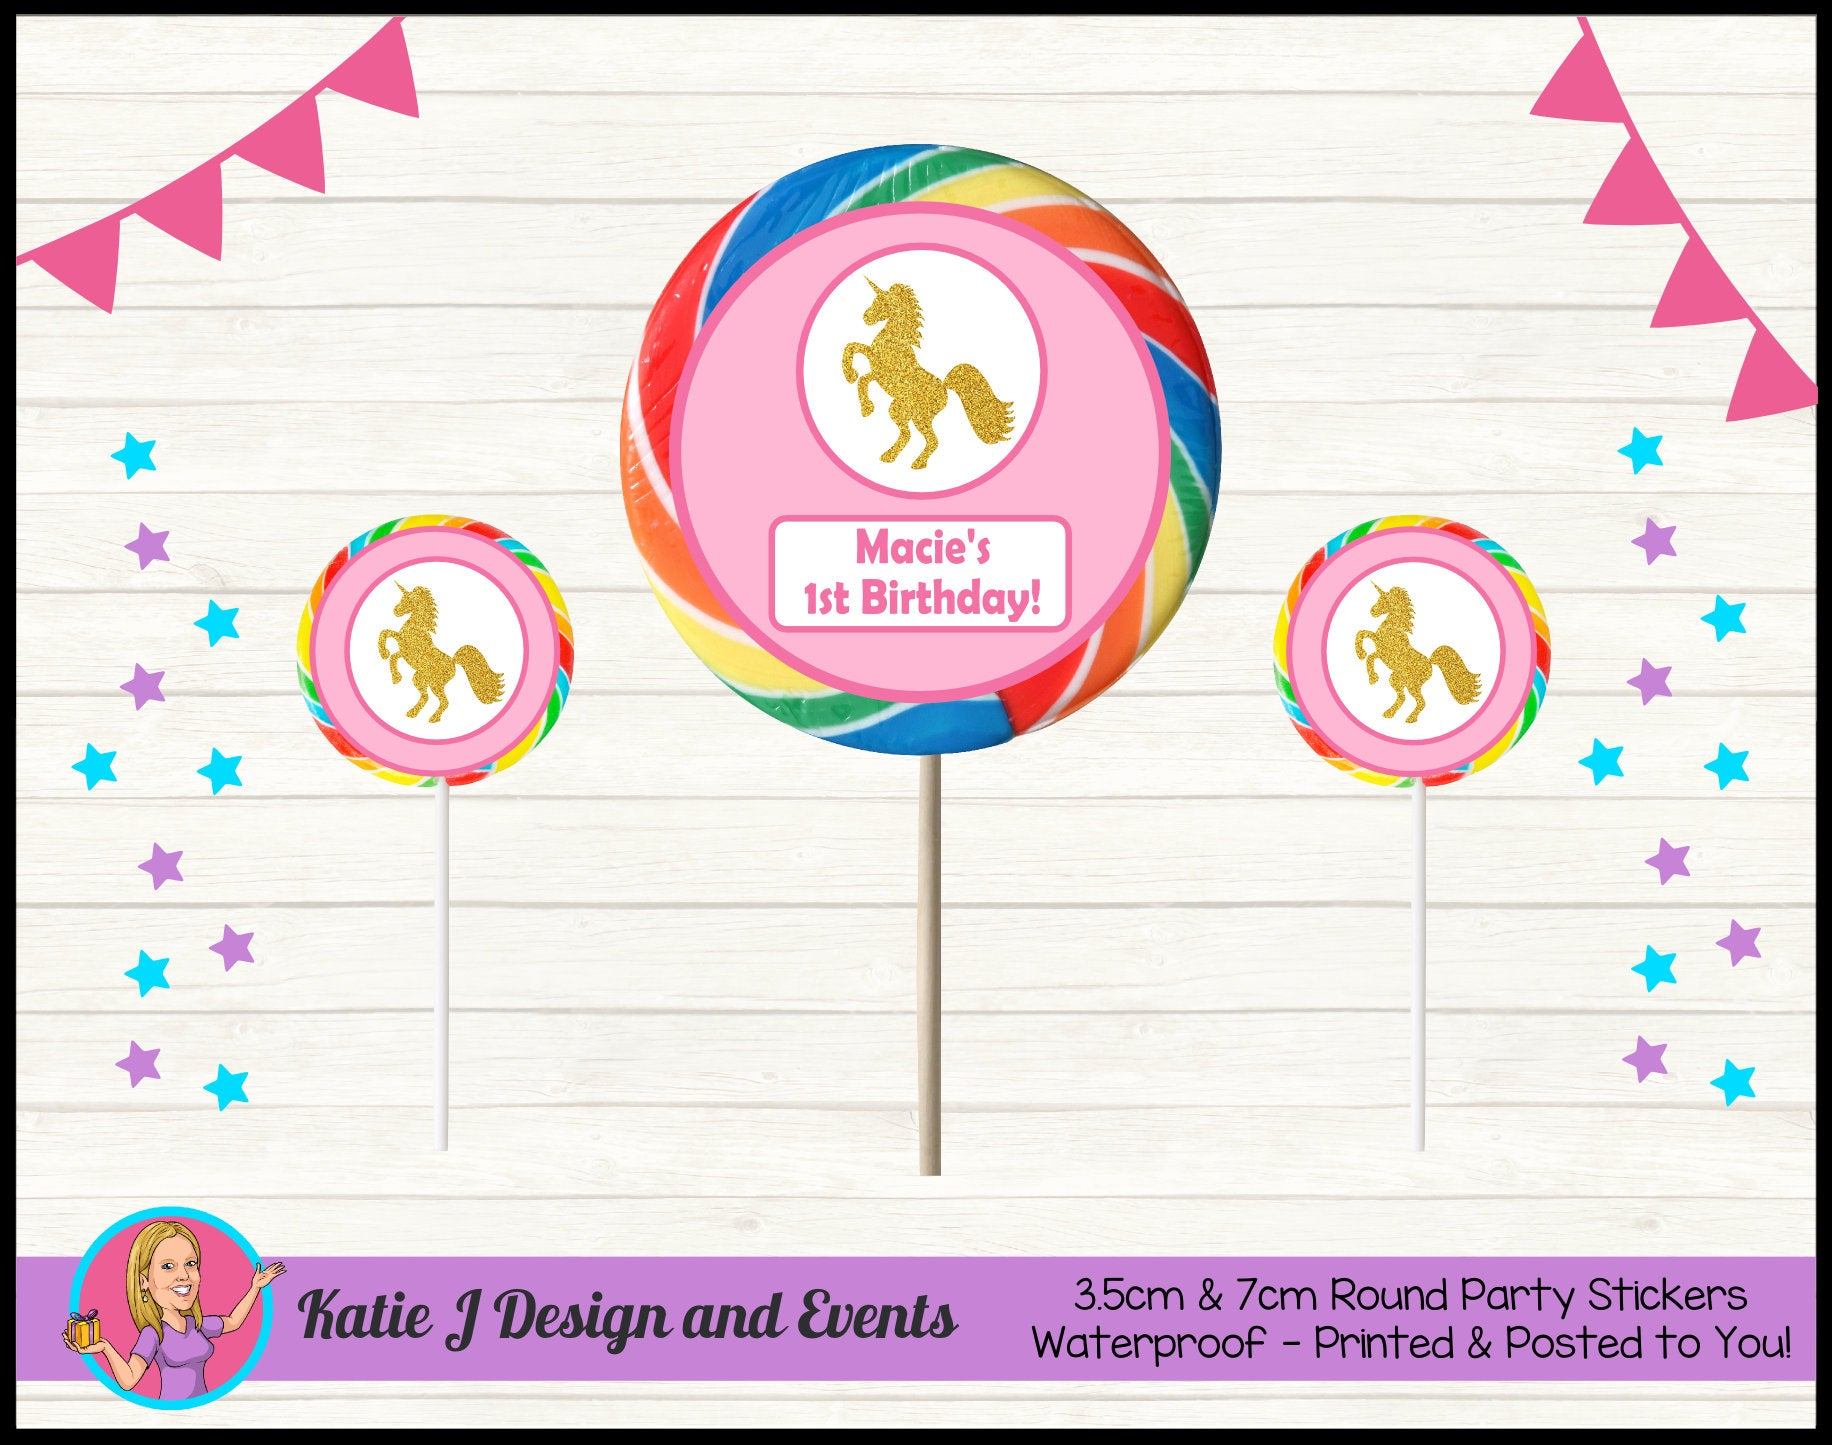 Personalised Custom Round Party Lollipop Stickers